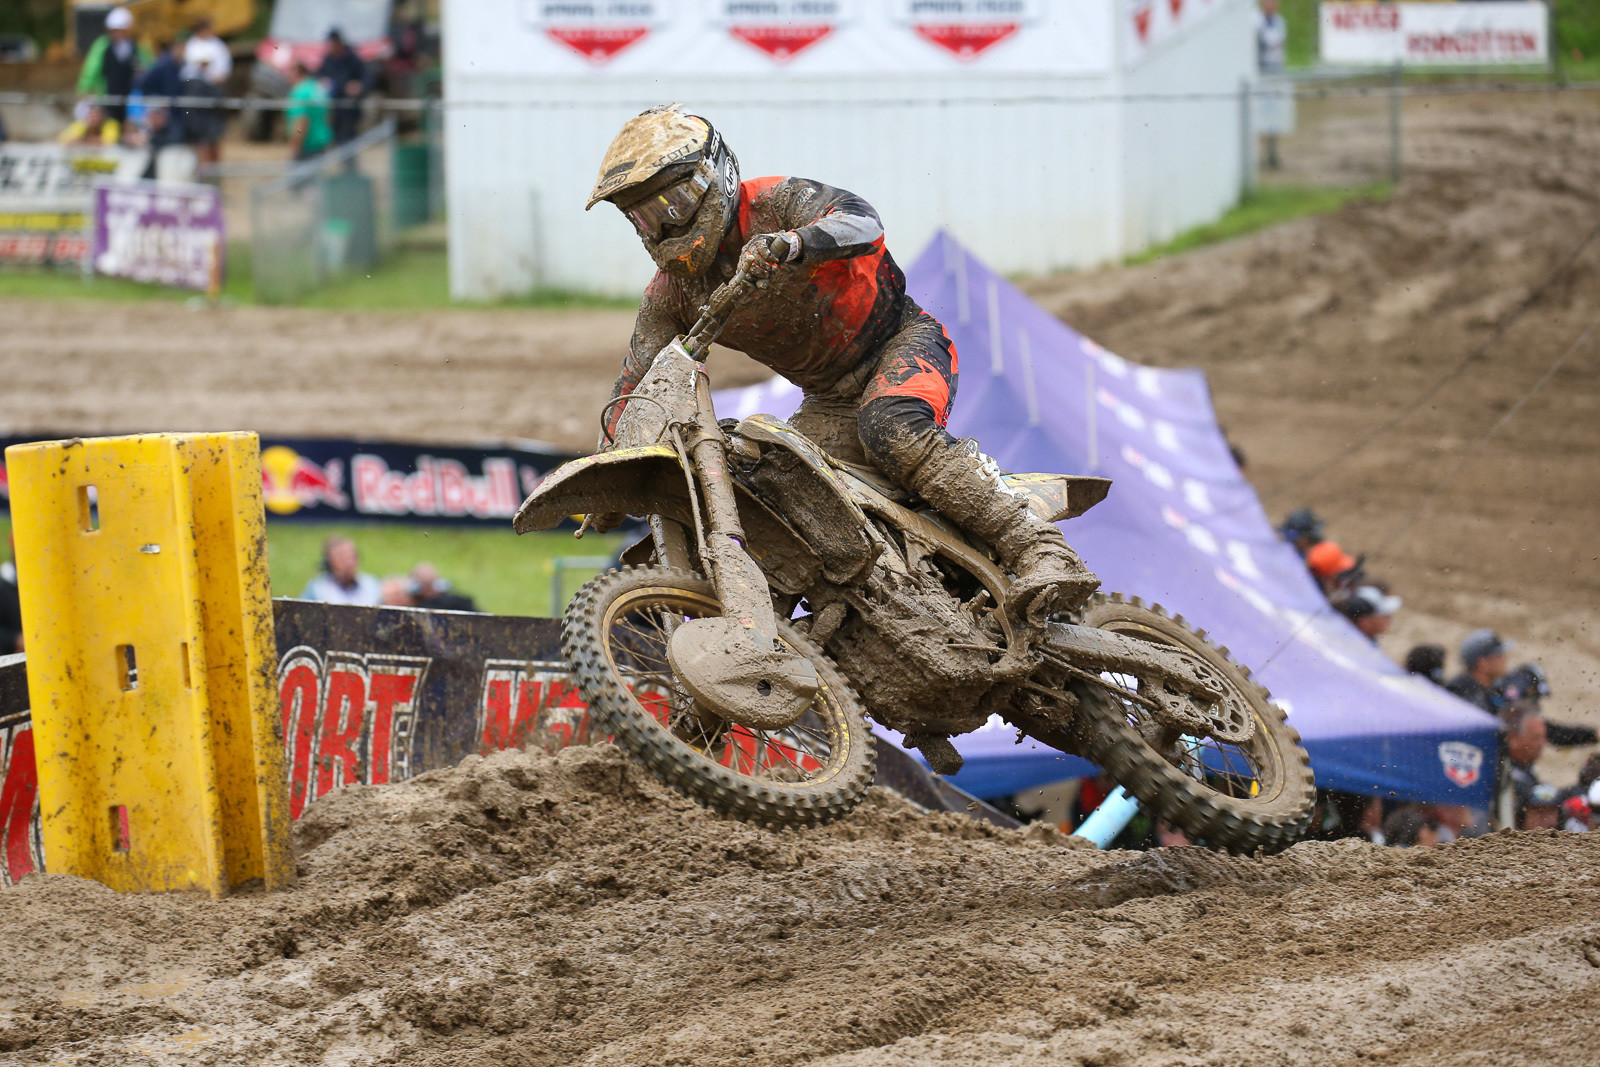 Much to the delight of the local crowd, Alex Martin was running in the top three. He took advantage of a crash by Adam Cianciarulo to finish in second for the first moto.